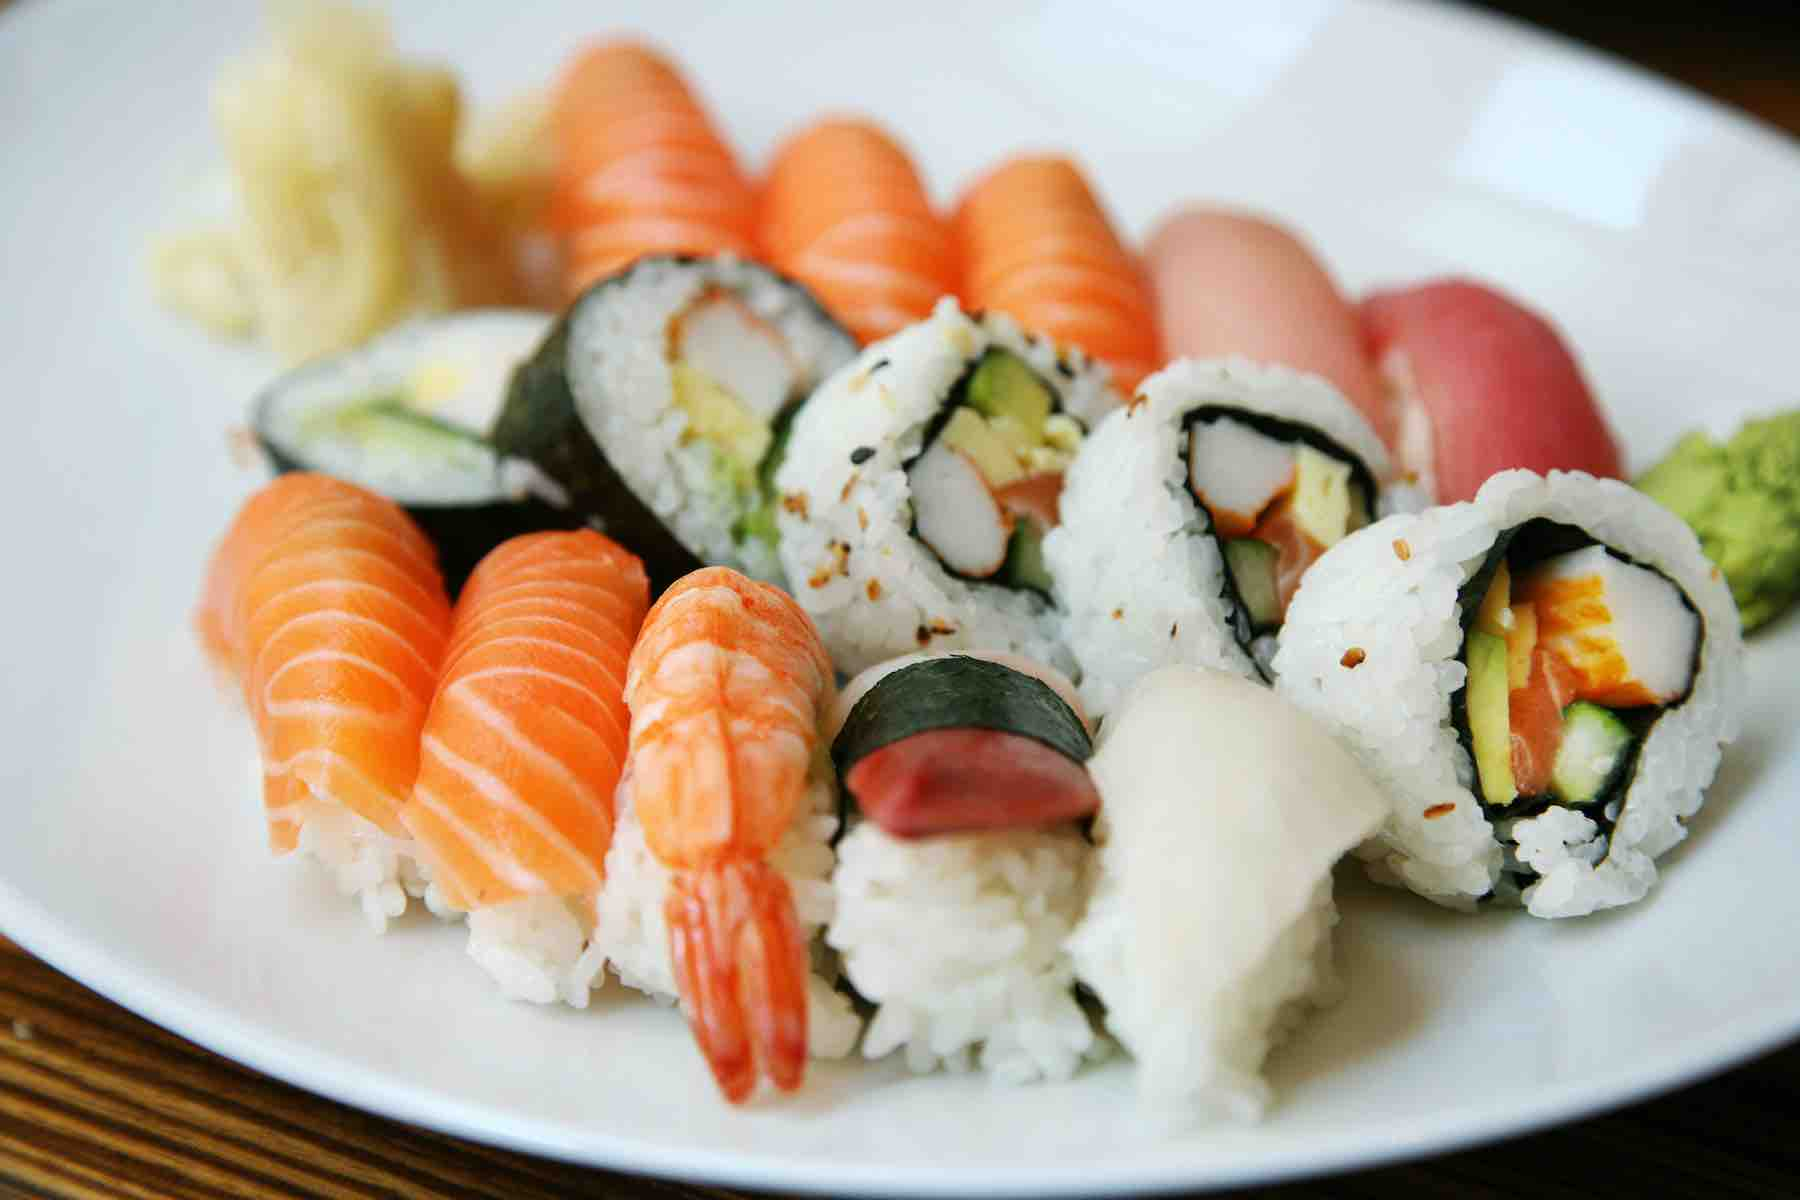 Find out where to get the best sushi in Maui Hawaii by top Hawaii blog Hawaii Travel with Kids. Image of a plate of sushi.